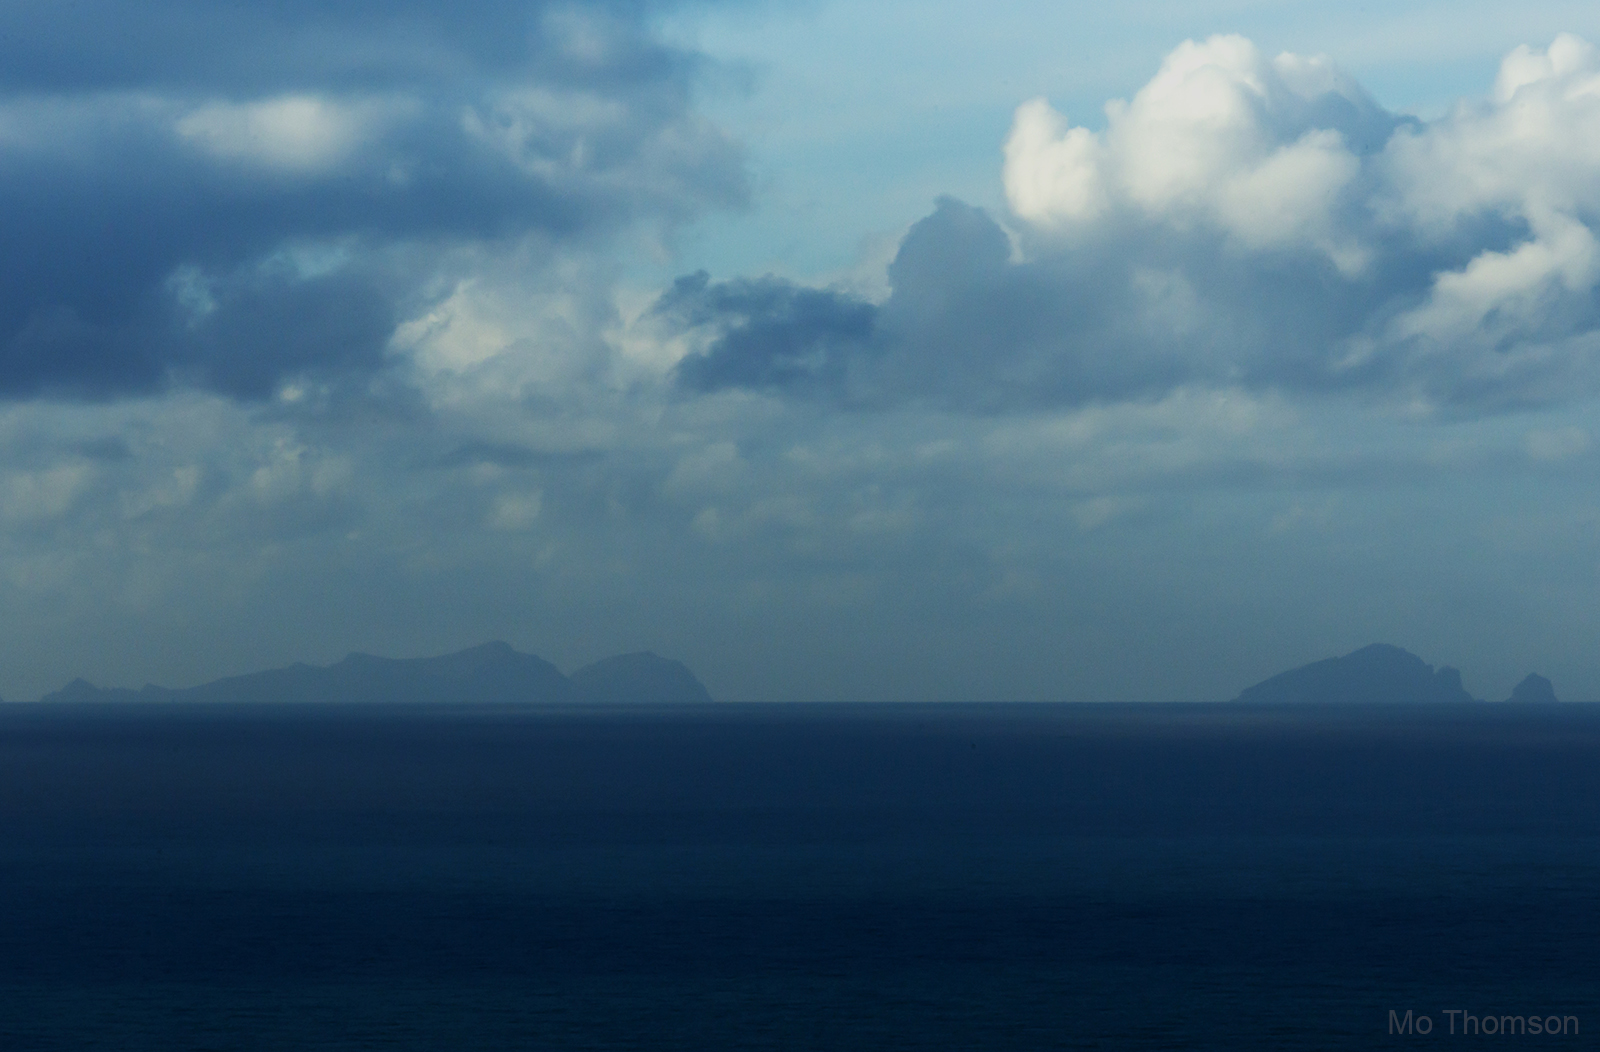 St Kilda boreray from Ceapabhal